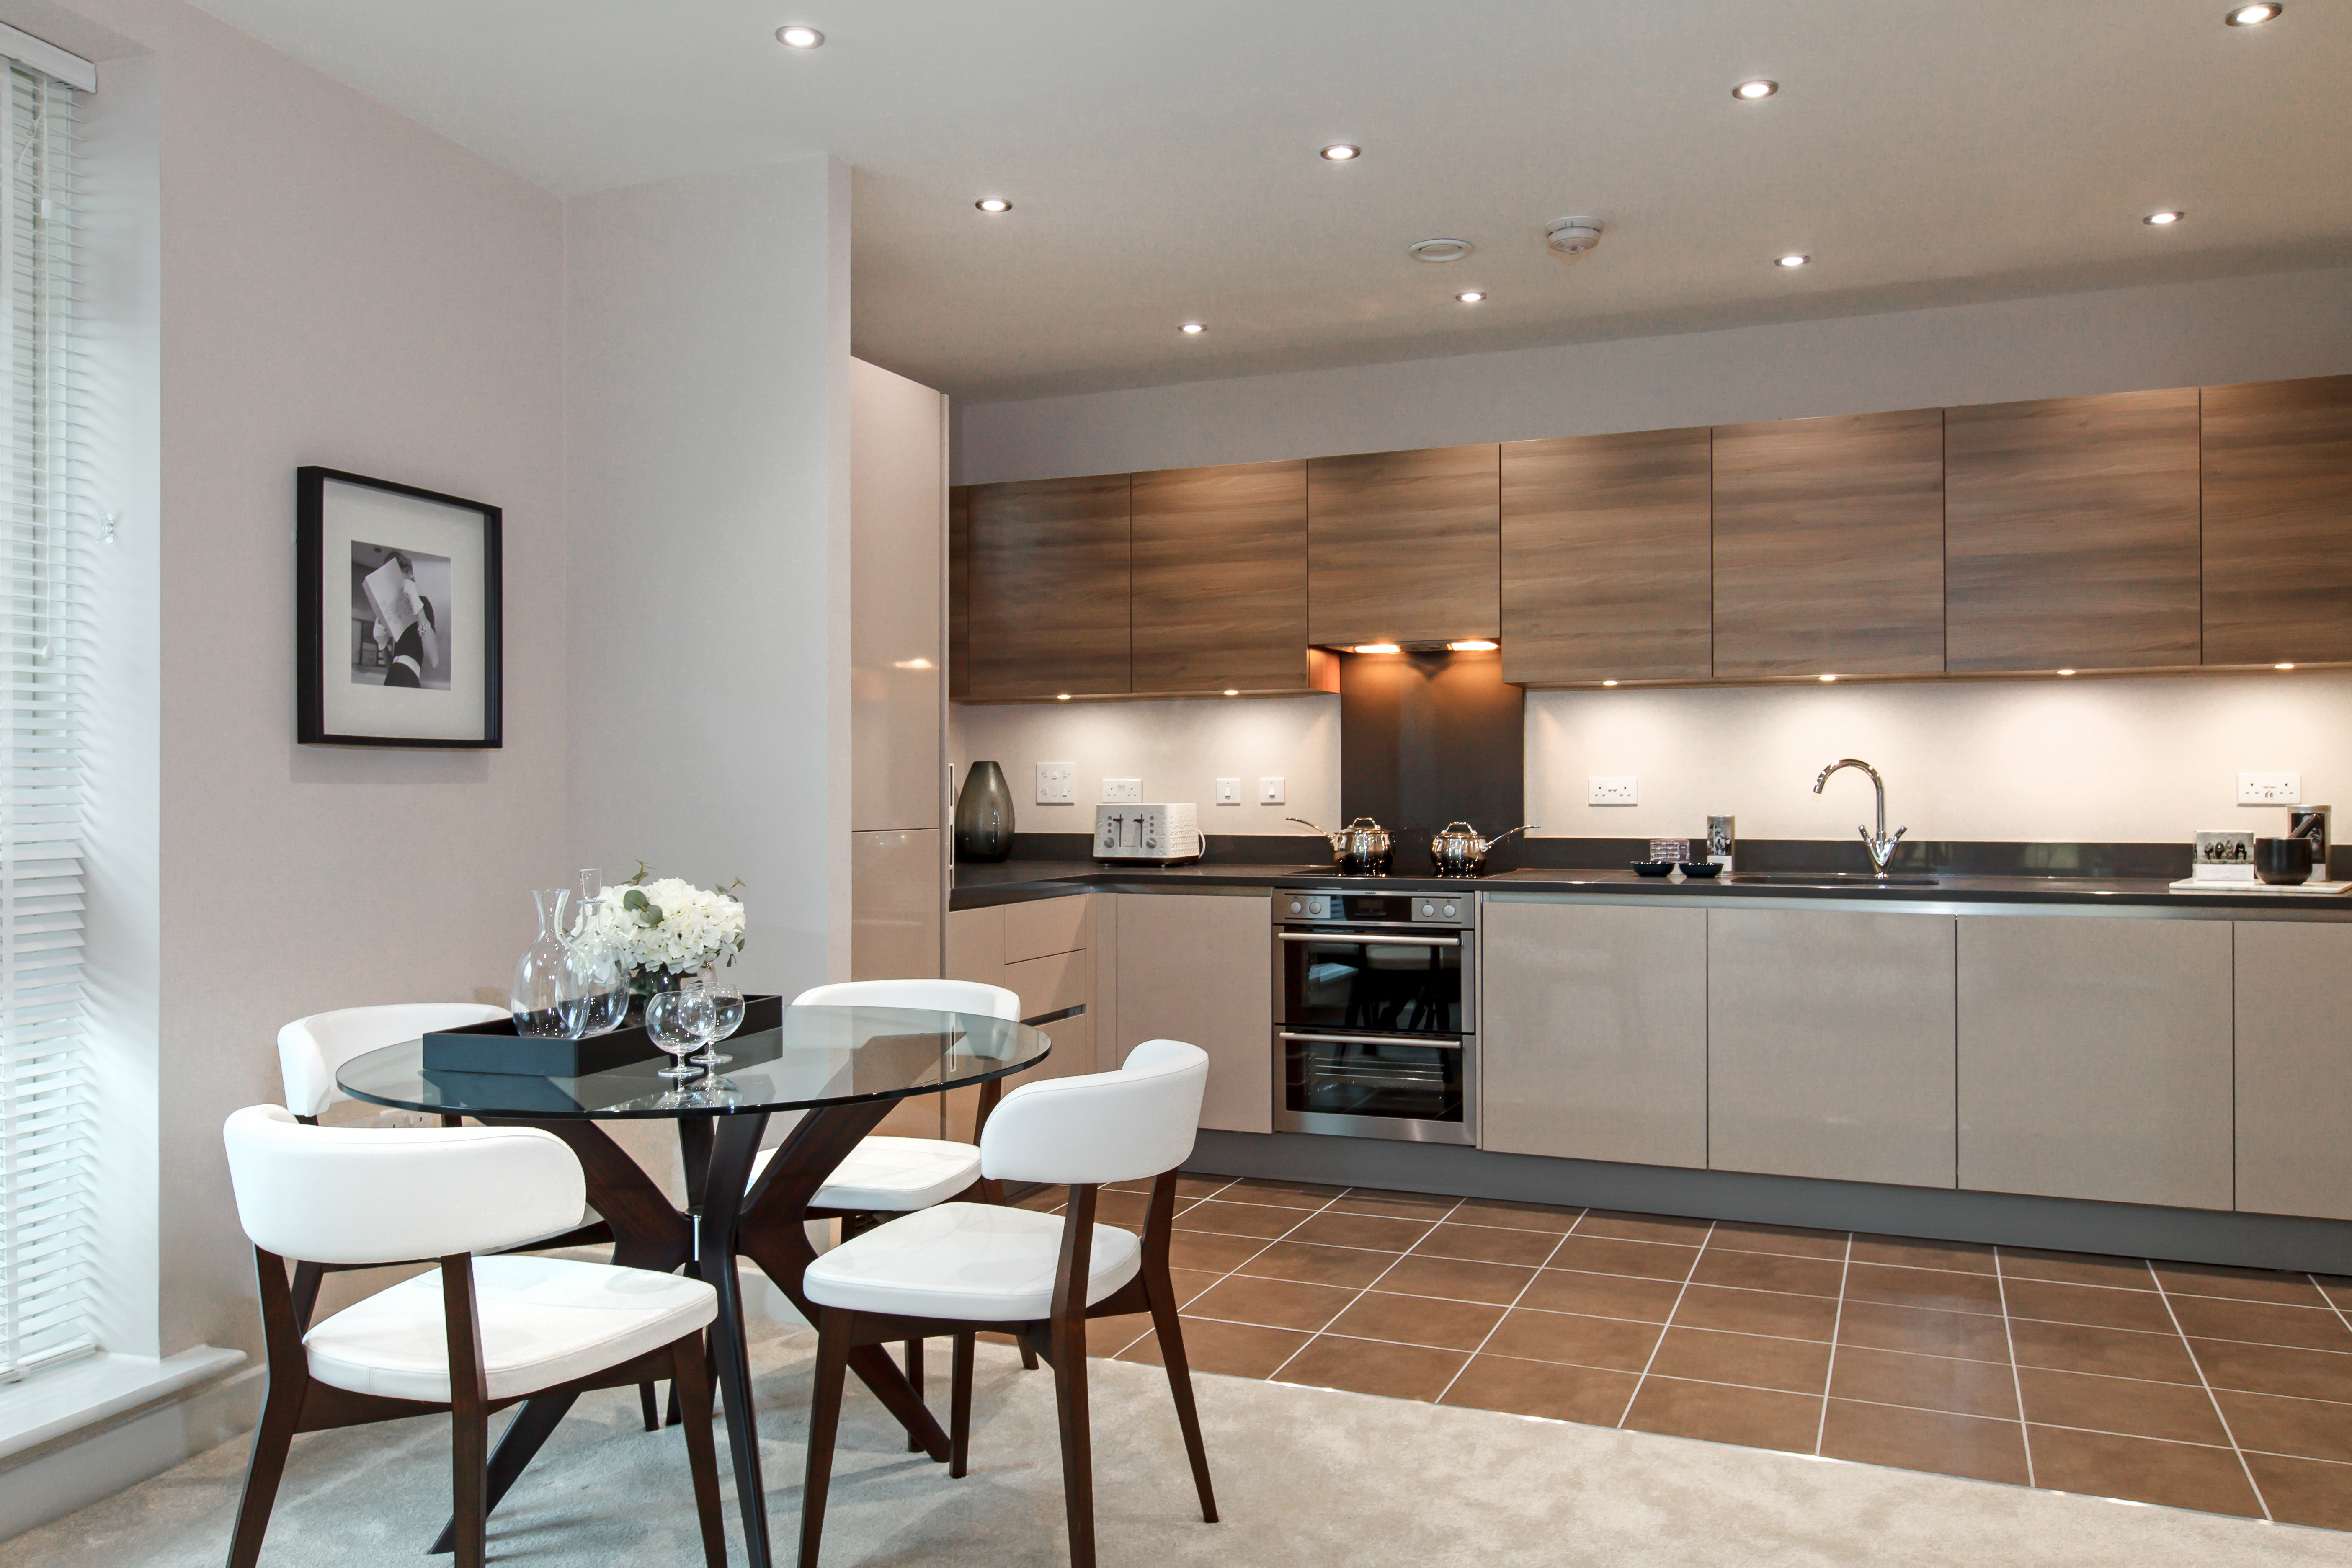 TW_NT_Millbrook Park_2 Bed Apartment_Kitchen_1